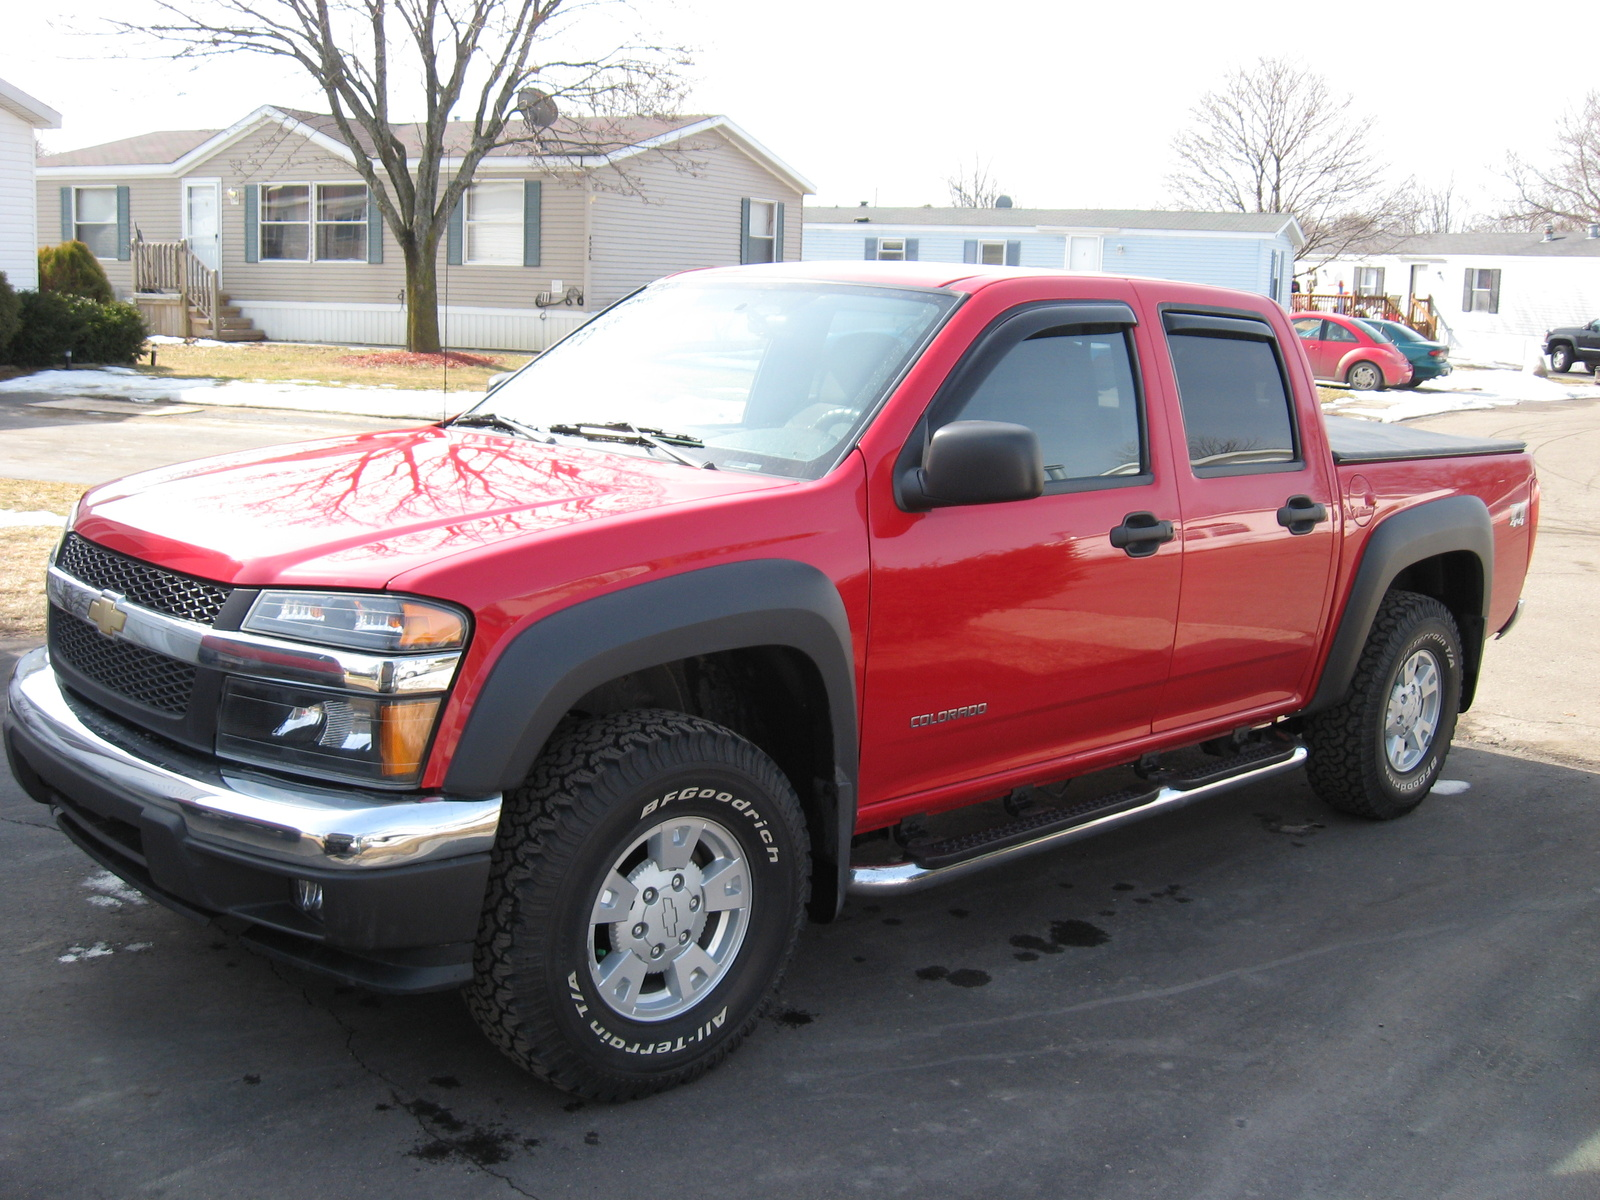 2005 Chevrolet Colorado picture